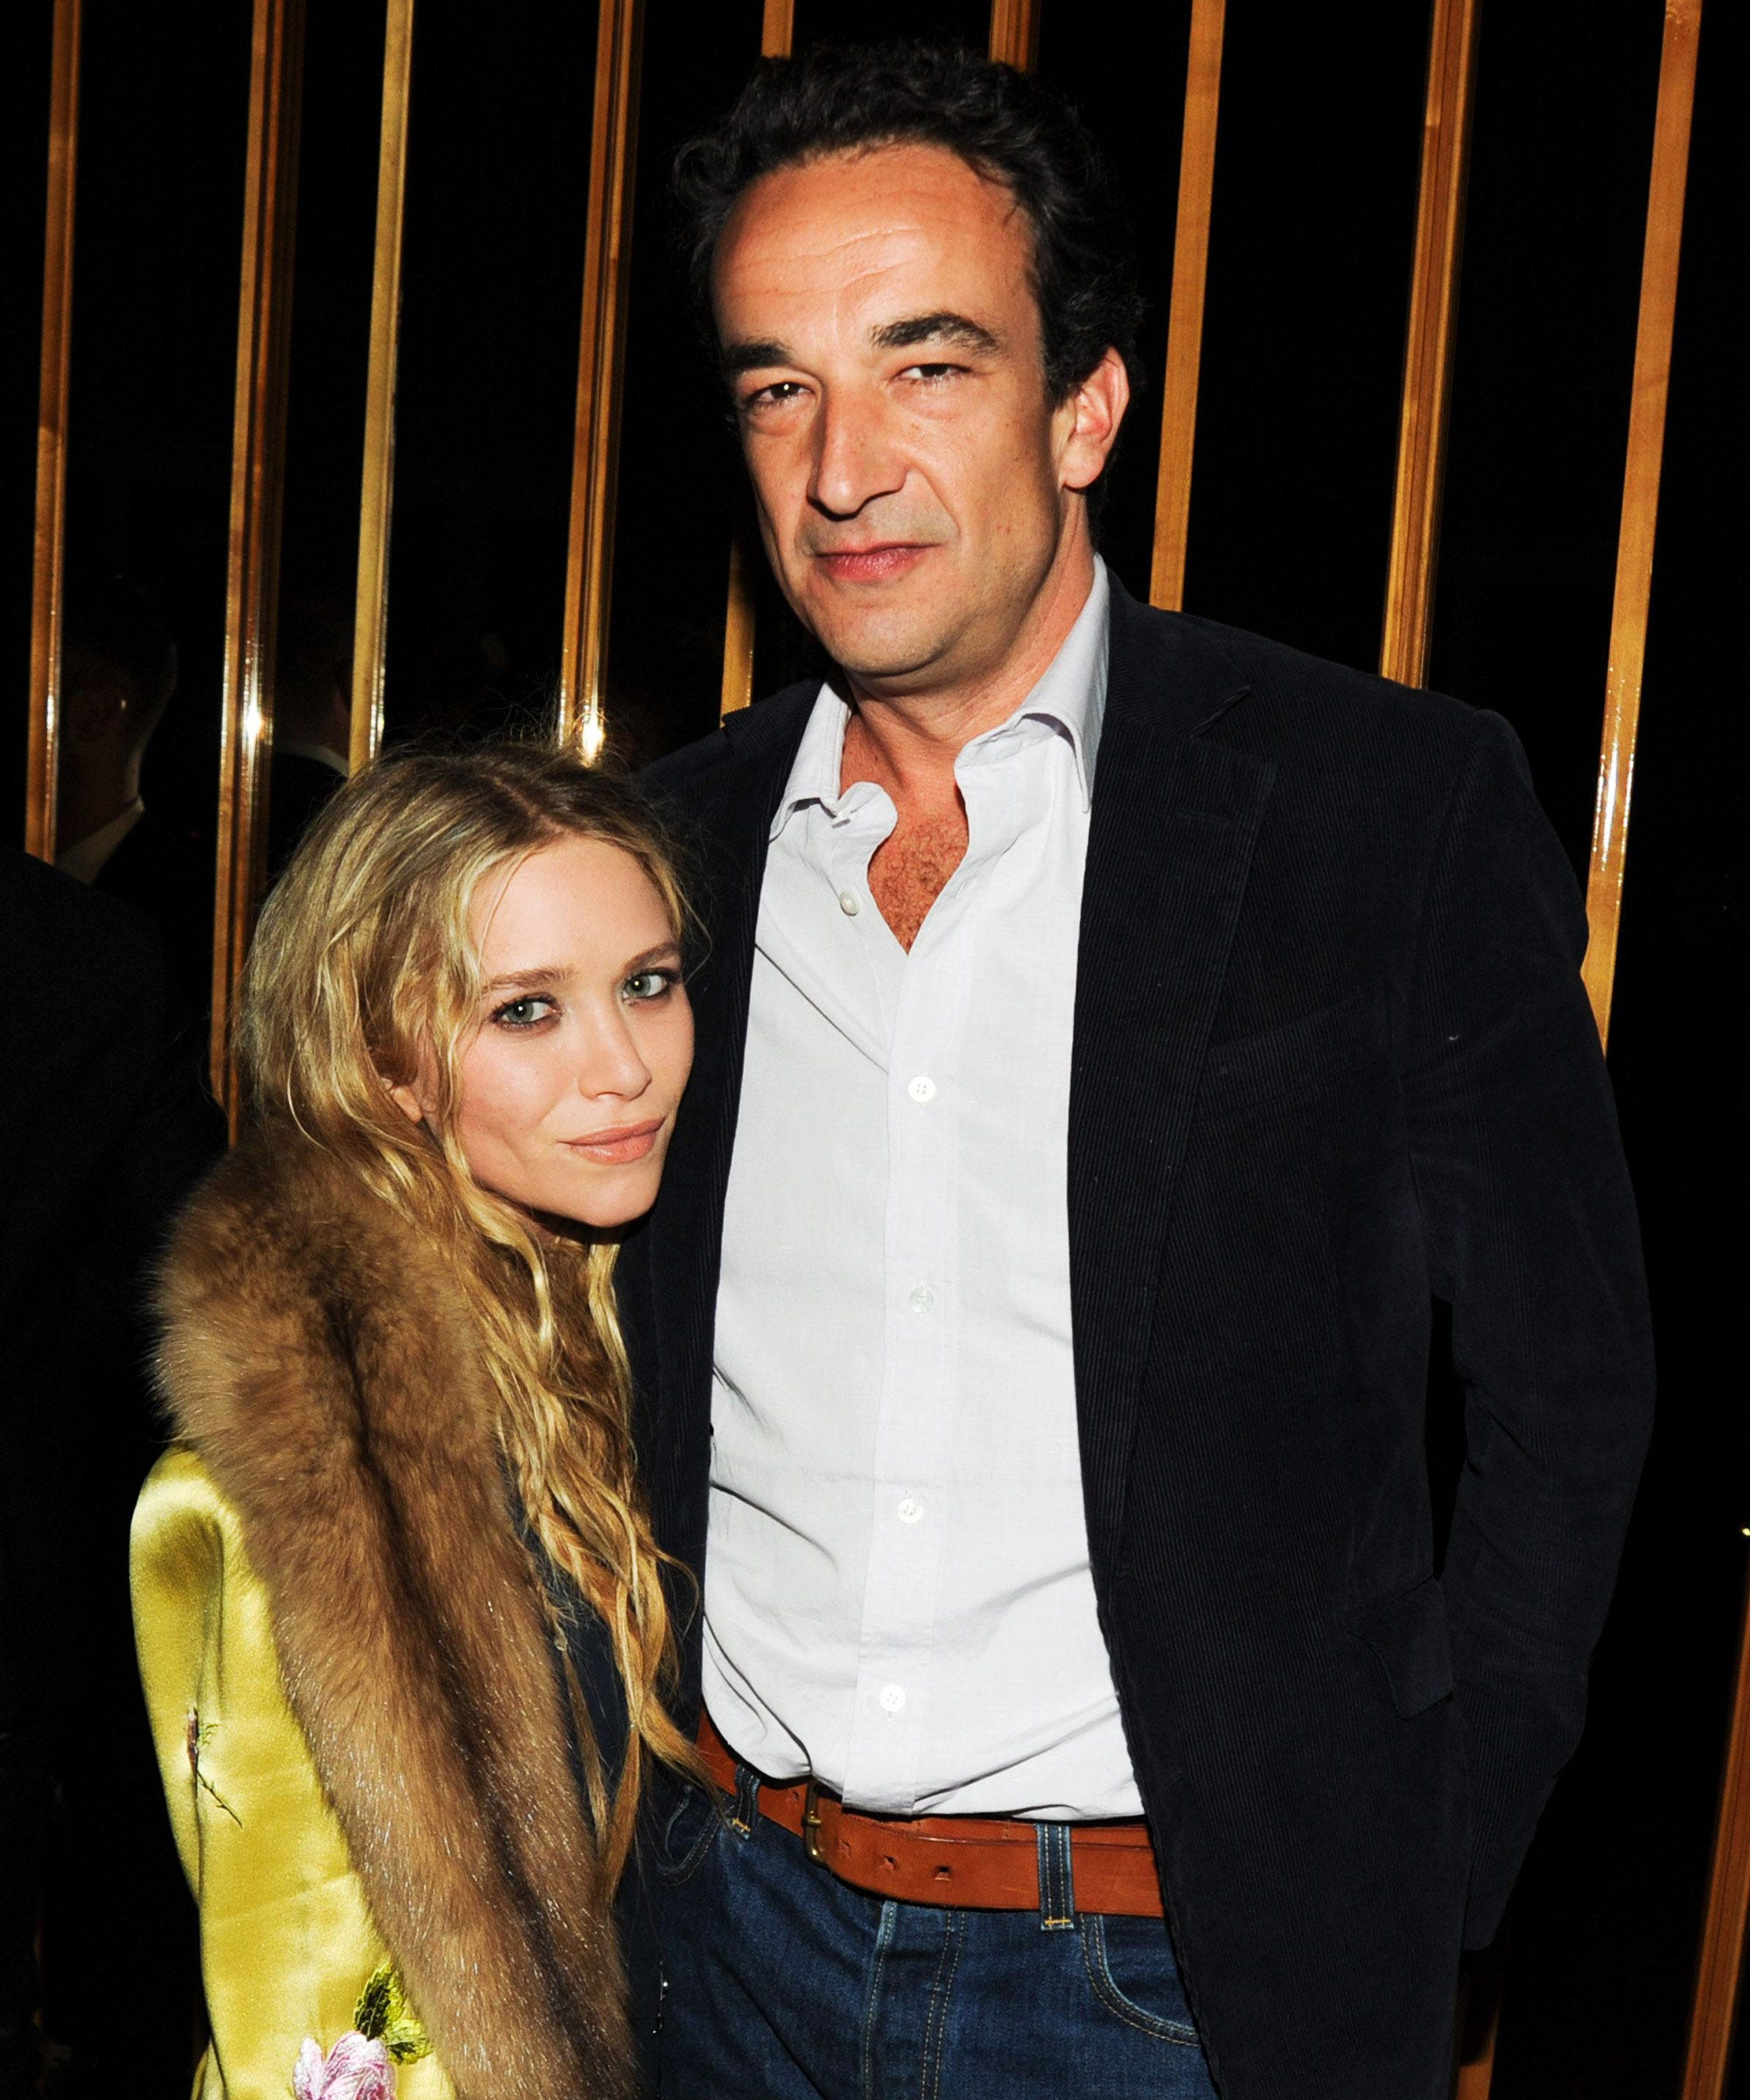 Mary Kate Olsen Wedding Anniversary, Married Life 2016